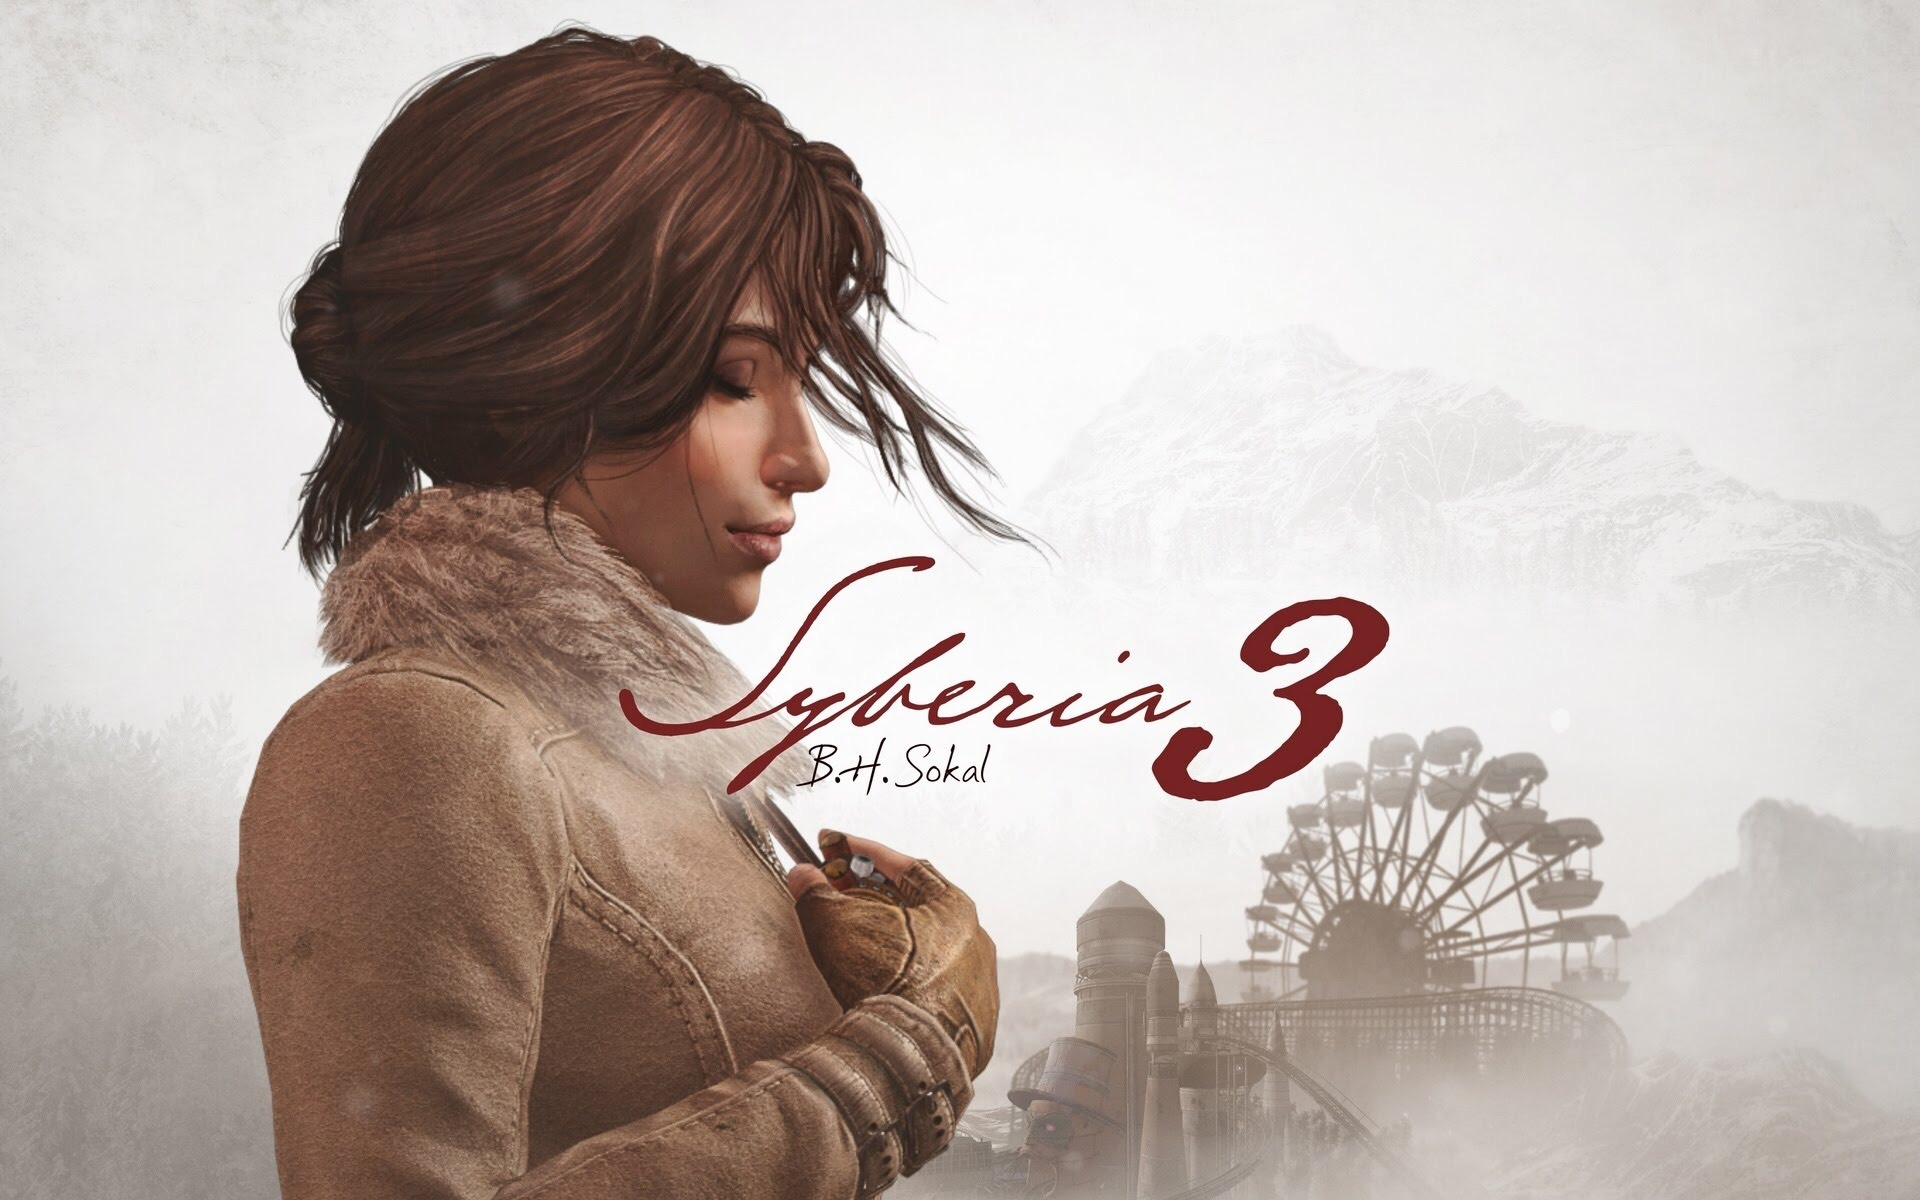 Syberia 3 Nintendo Switch Review: The Problem with Modern Adventure Games